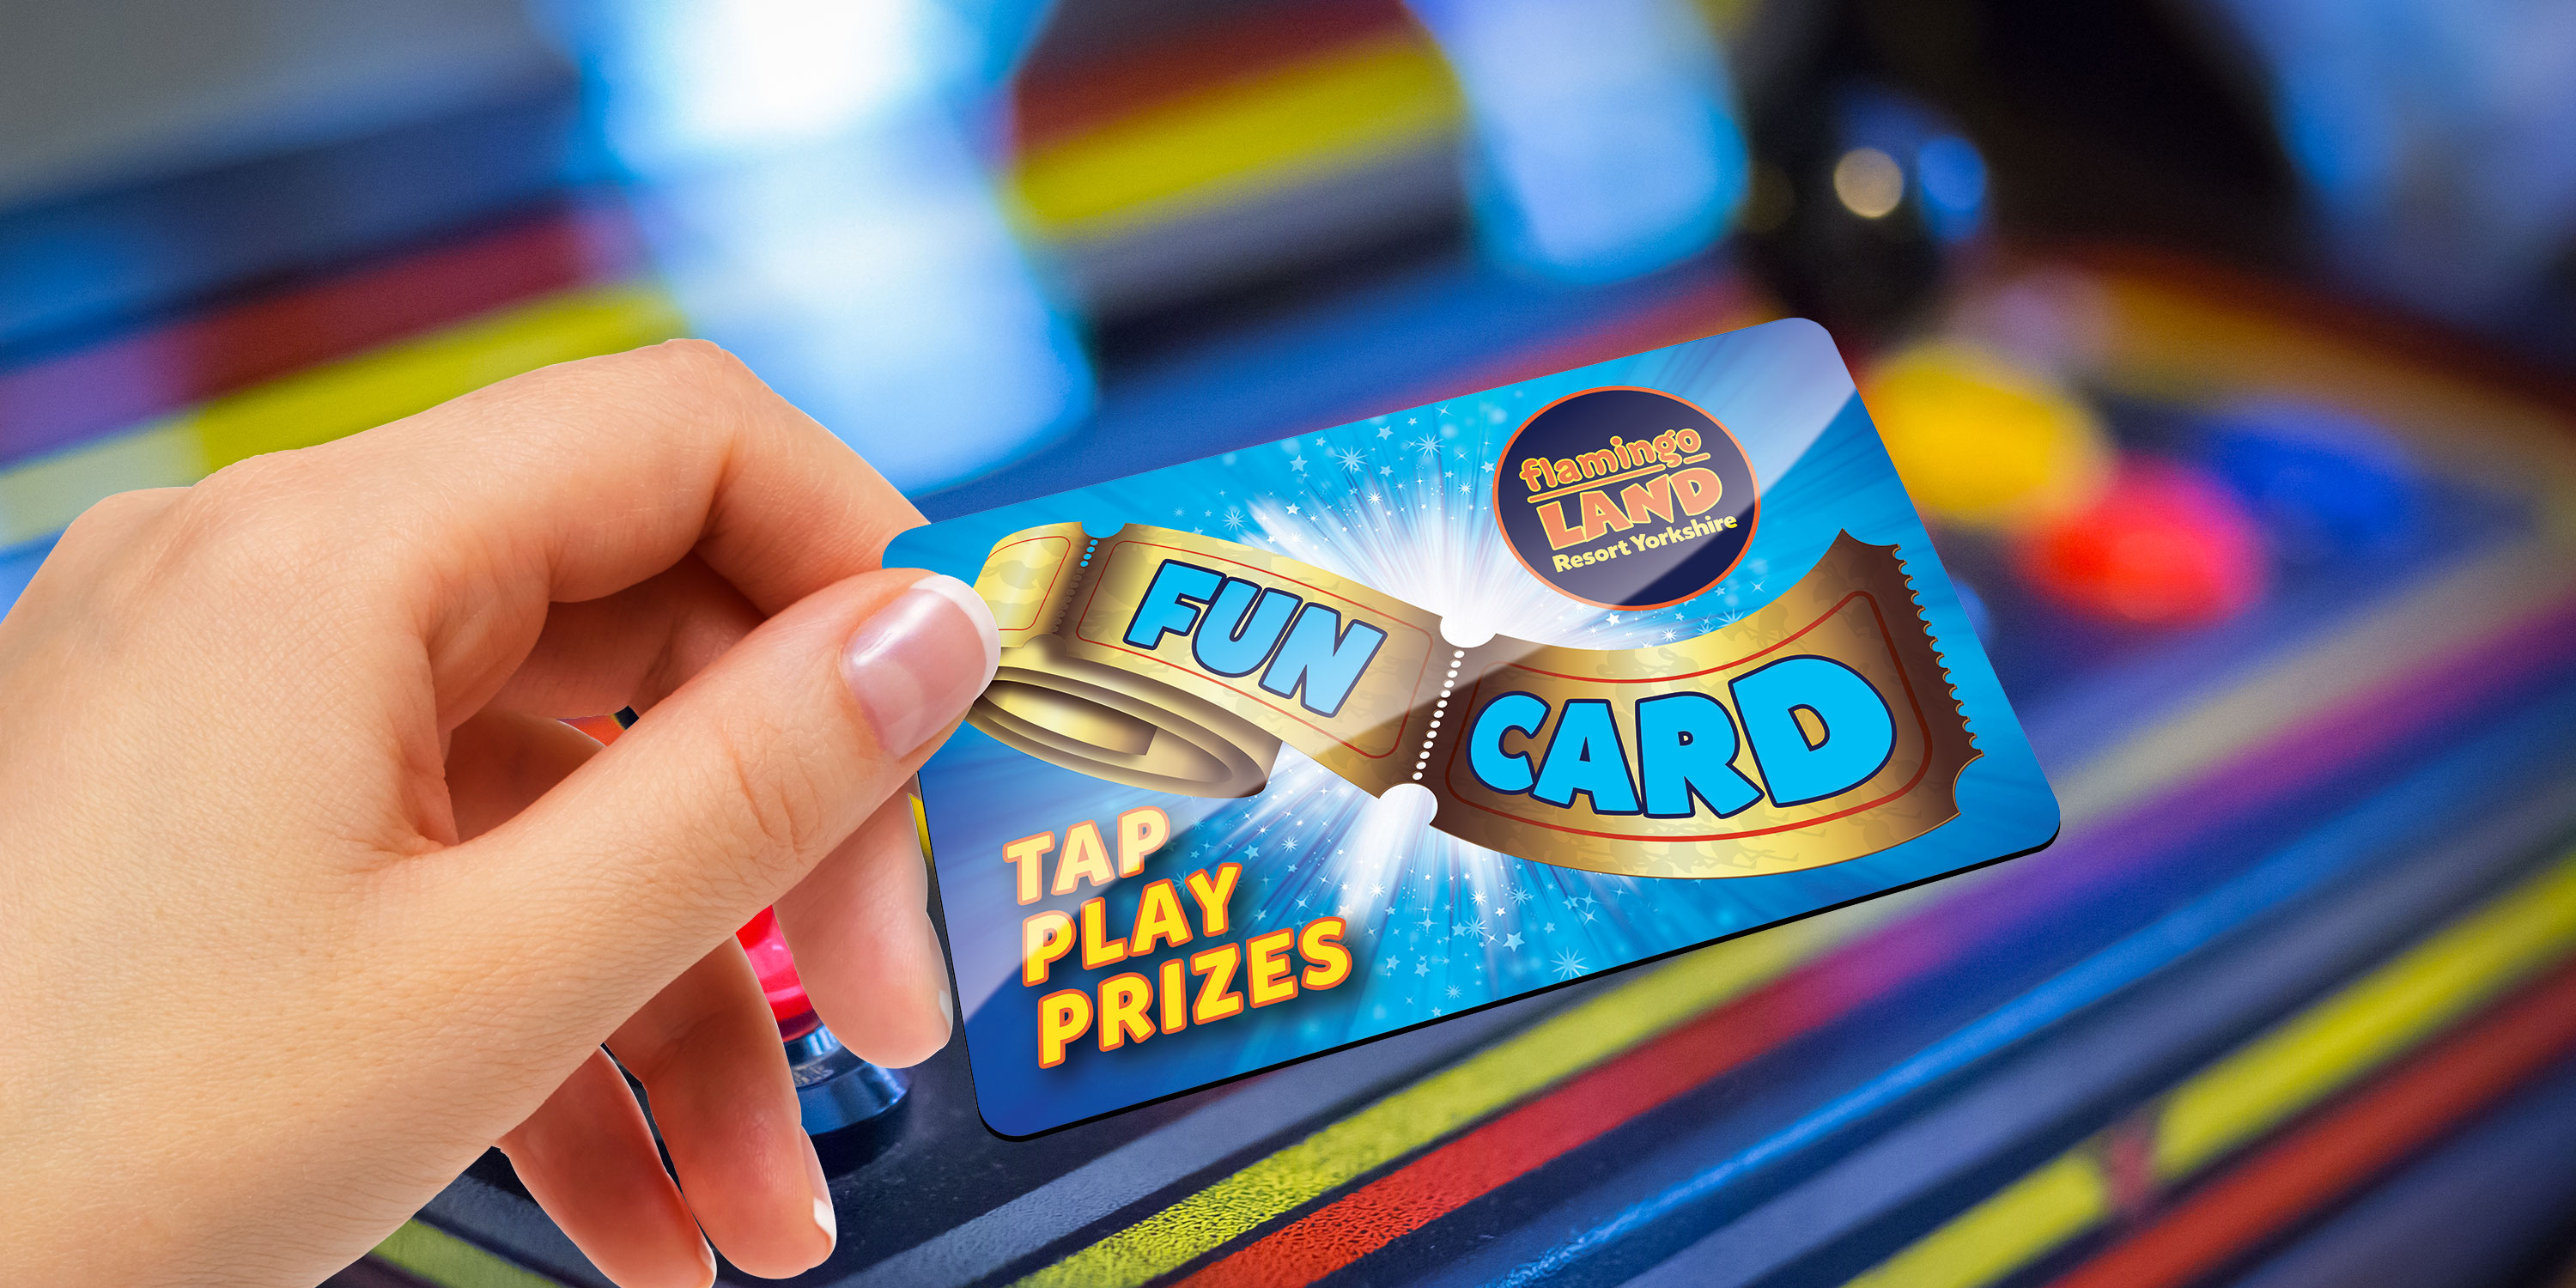 Introducing Our New Reloadable Fun Card - Flamingo Land Resort